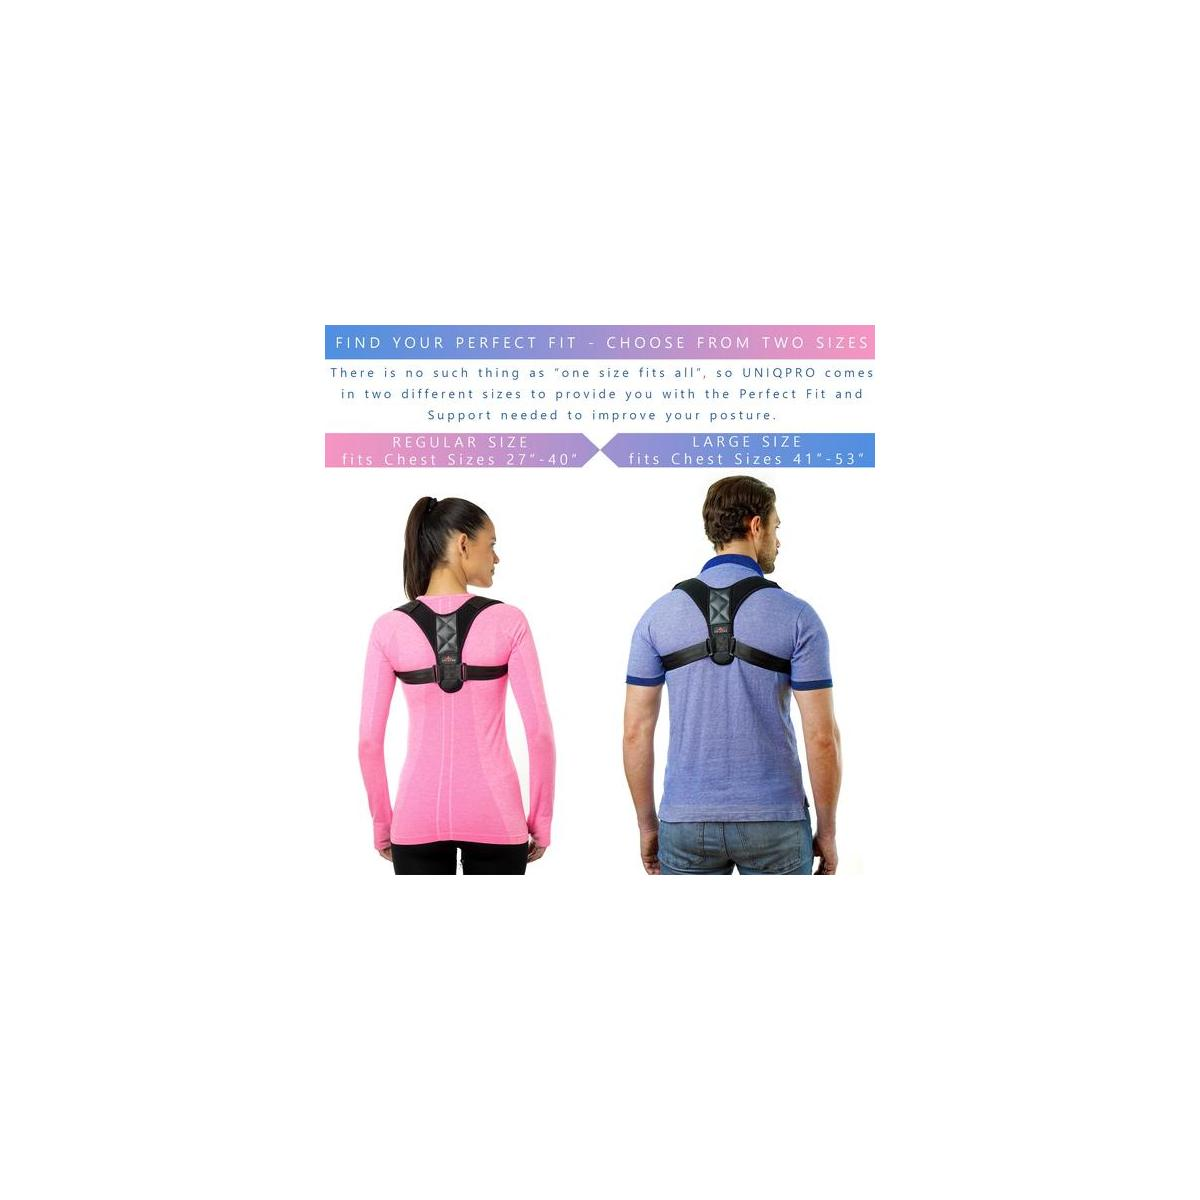 UNIQPRO POSTURE CORRECTOR - Regular Size